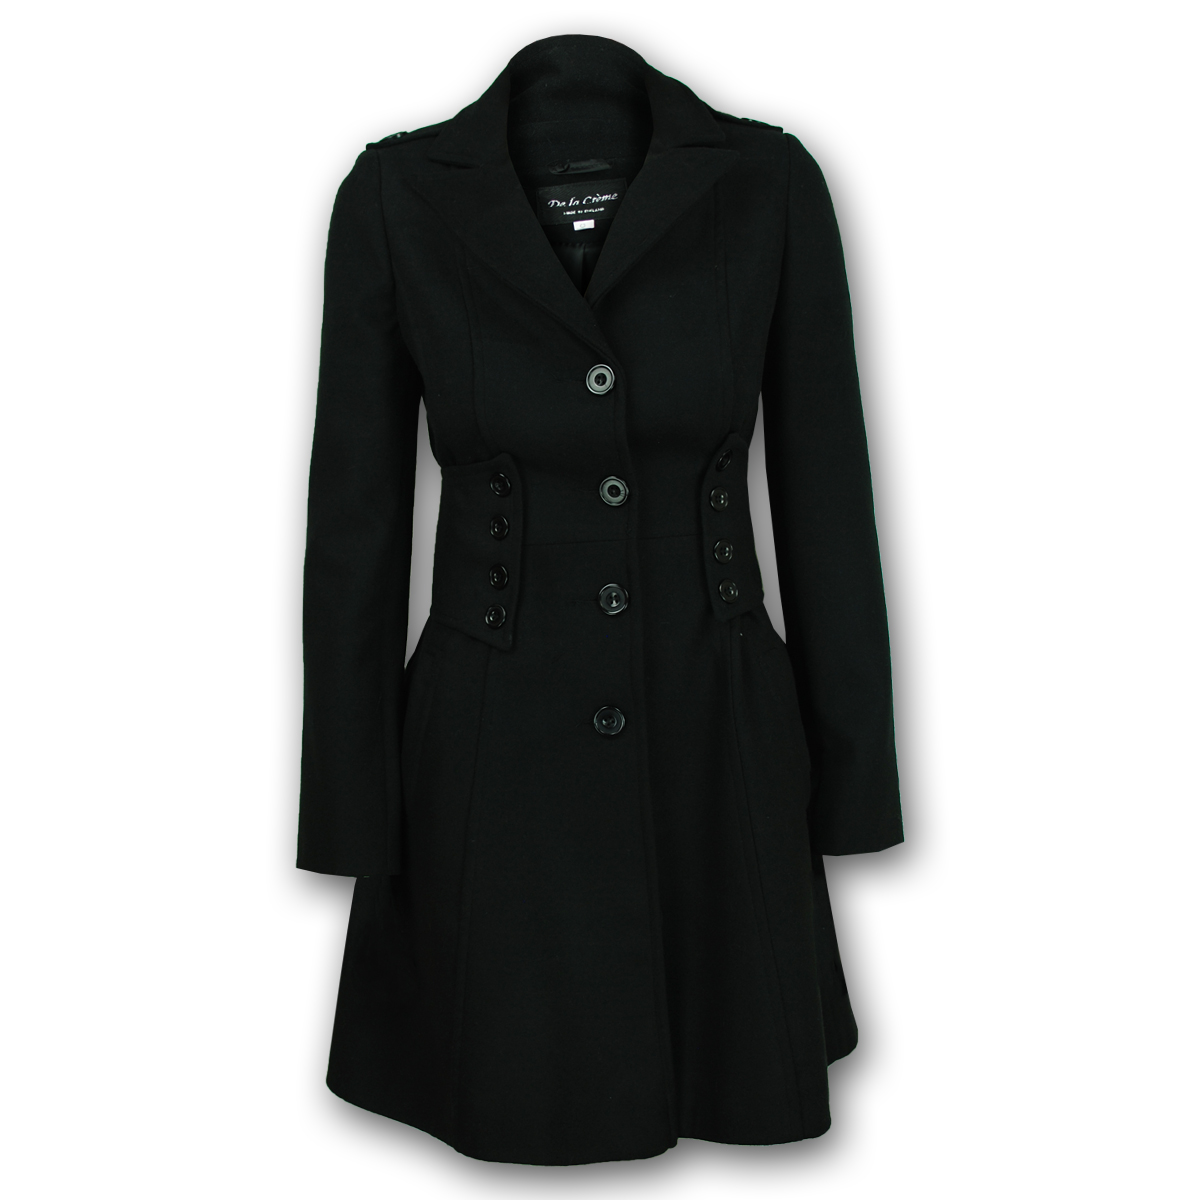 Best prices on Black wool jacket in Women's Jackets & Coats online. Visit Bizrate to find the best deals on top brands. Read reviews on Clothing & Accessories merchants and buy with confidence.